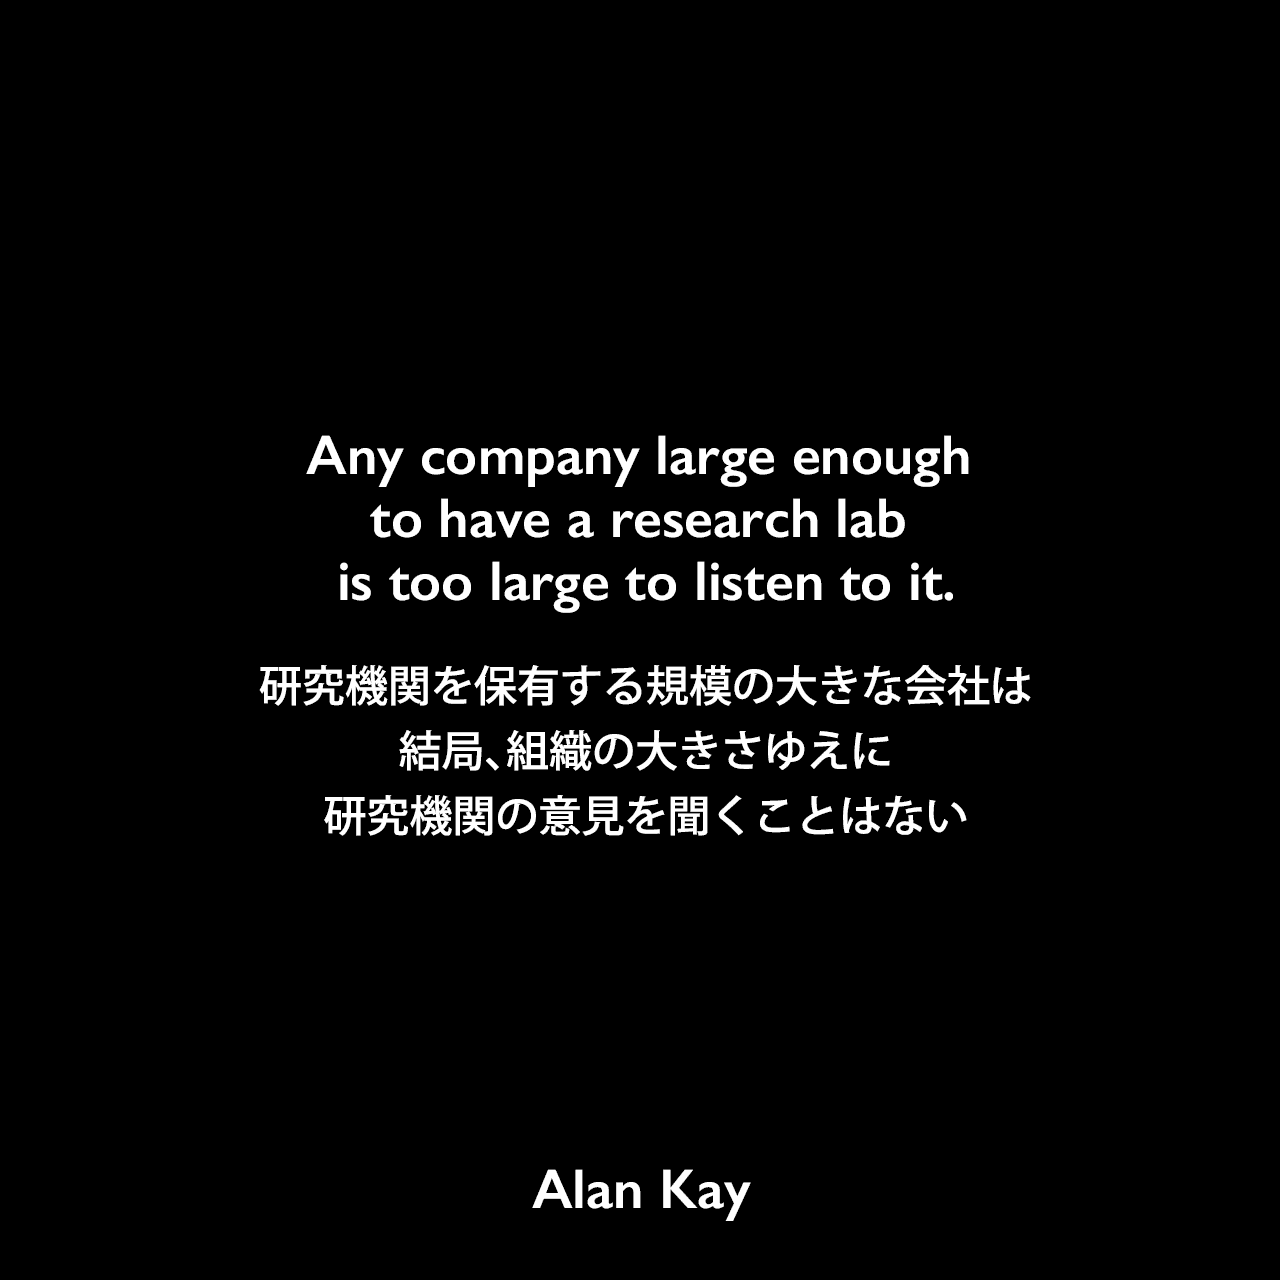 Any company large enough to have a research lab is too large to listen to it.研究機関を保有する規模の大きな会社は、結局、組織の大きさゆえに、研究機関の意見を聞くことはないAlan Kay